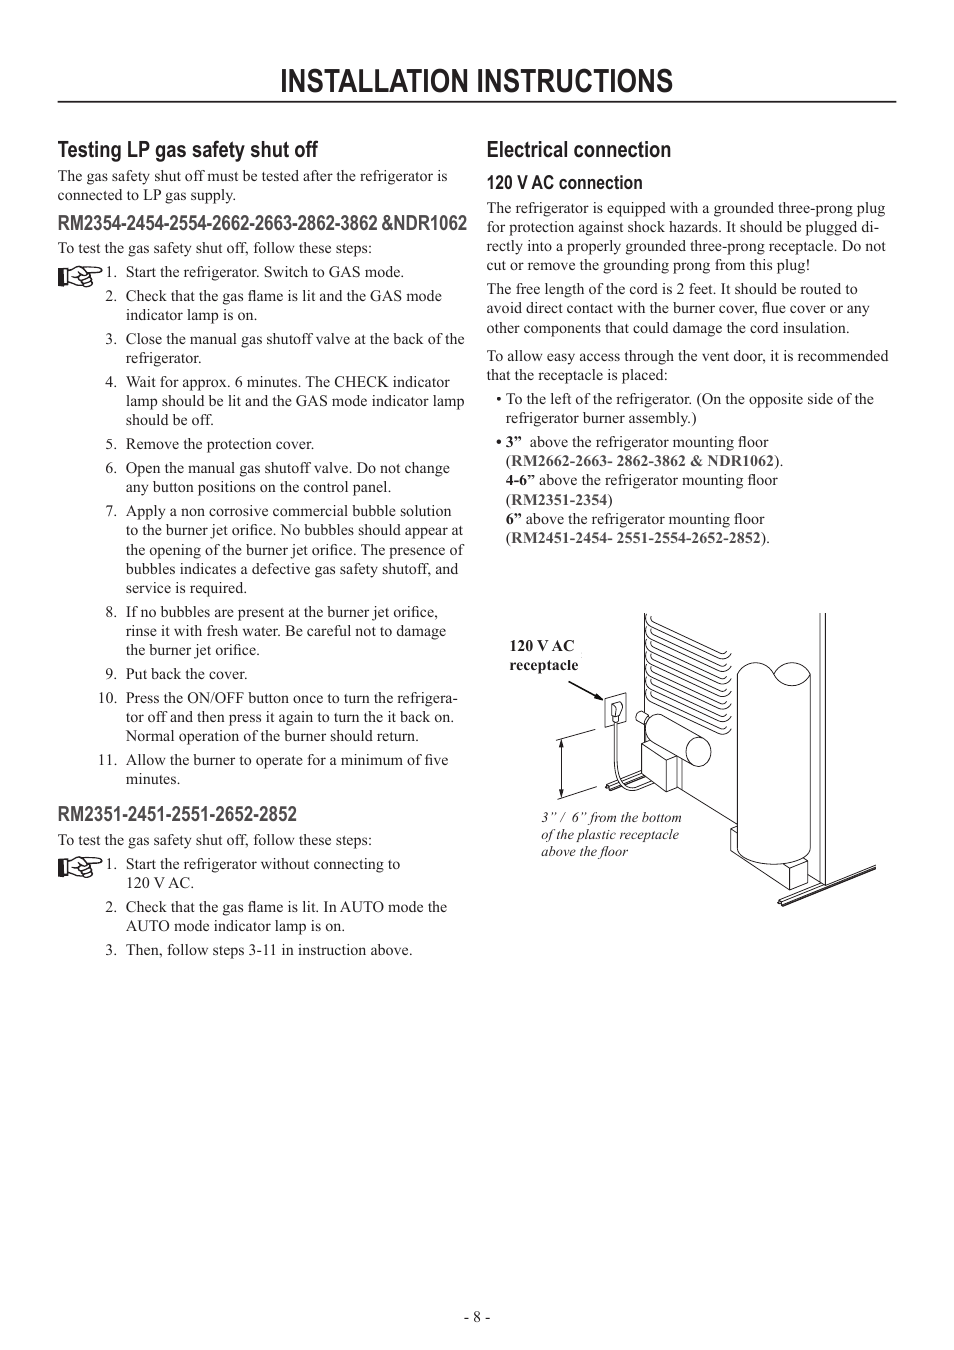 Installation Instructions Testing Lp Gas Safety Shut Off Motorhome Refrigerator Indicator Light Wiring Diagram Electrical Connection Dometic Rm2852 User